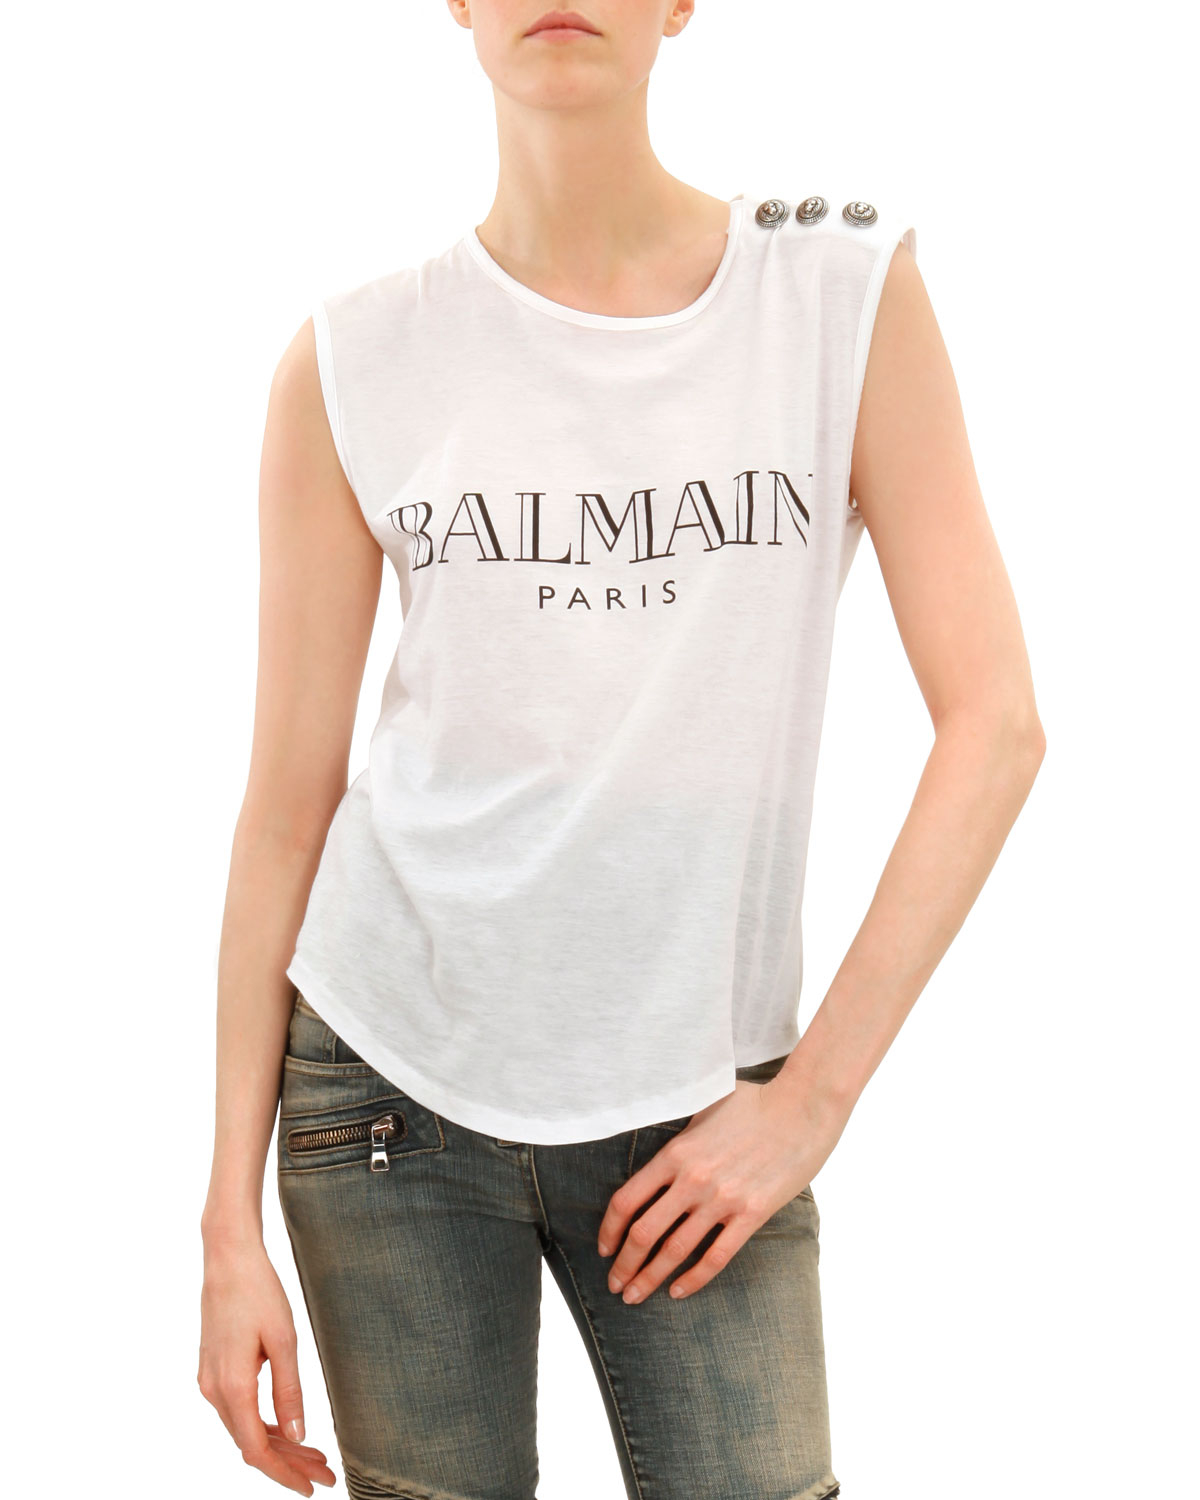 balmain sleeveless logo tshirt with shoulder buttons in black lyst. Black Bedroom Furniture Sets. Home Design Ideas